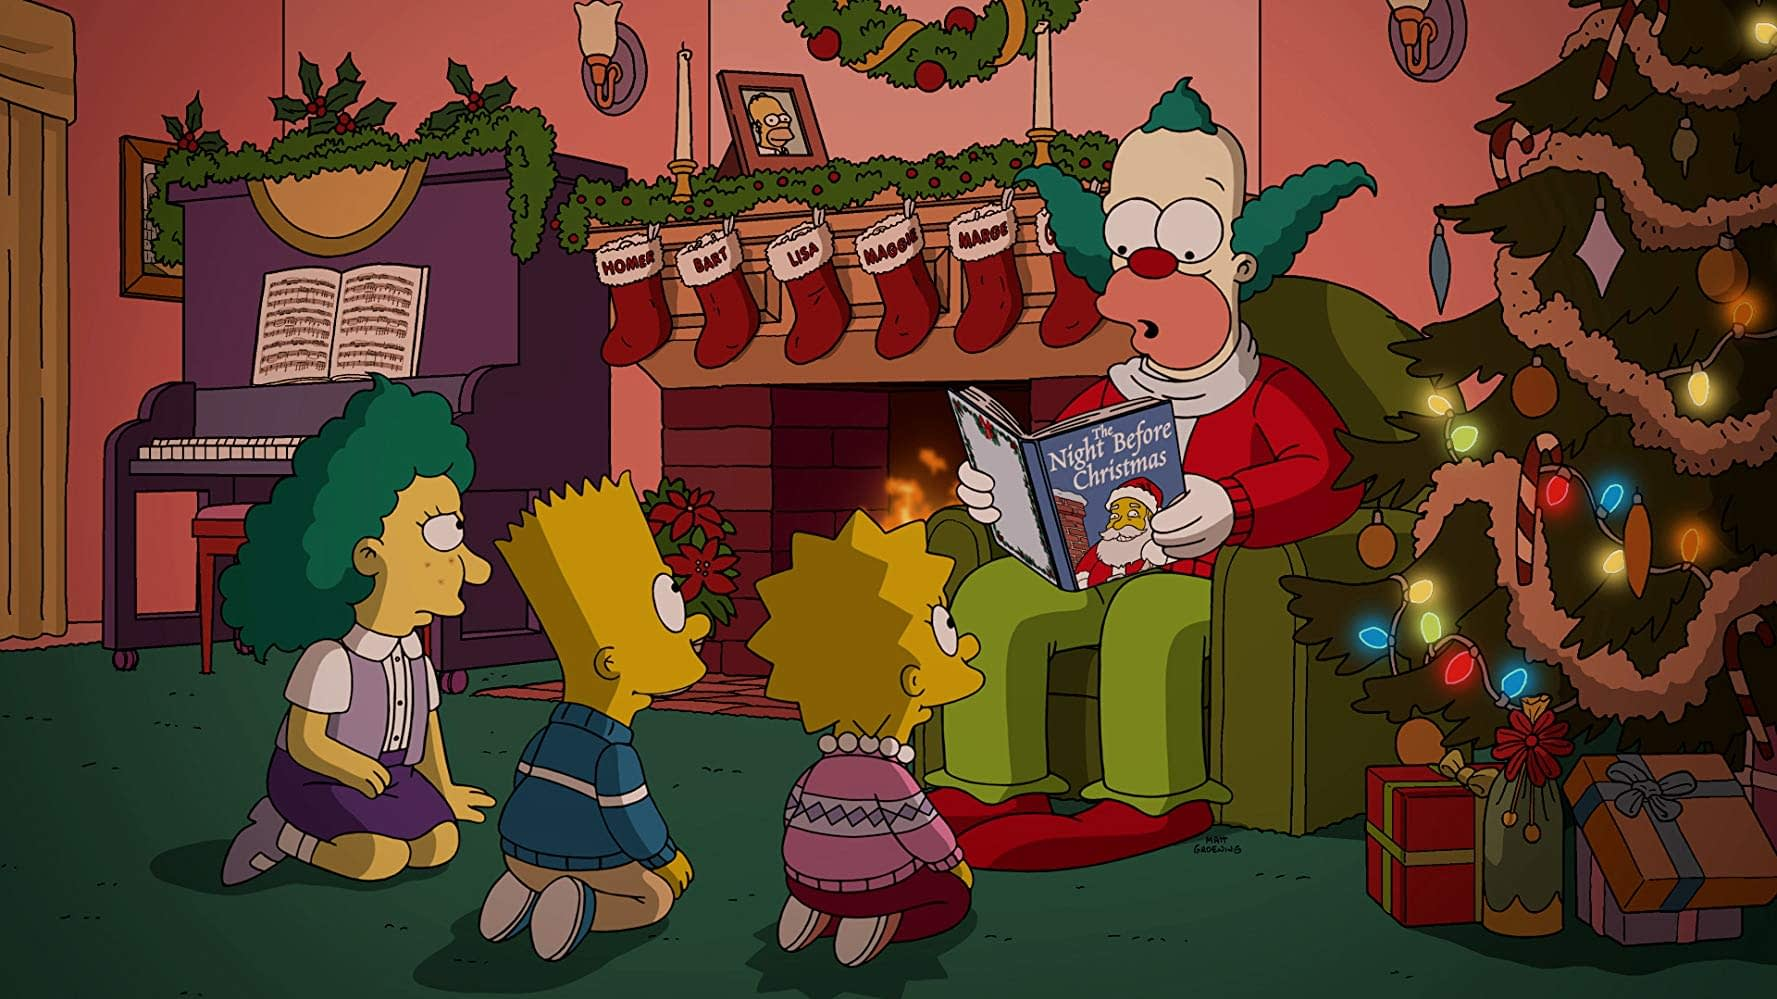 Simpsons Christmas Episodes.D Oh D Oh D Oh 16 Simpsons Christmas Episodes From